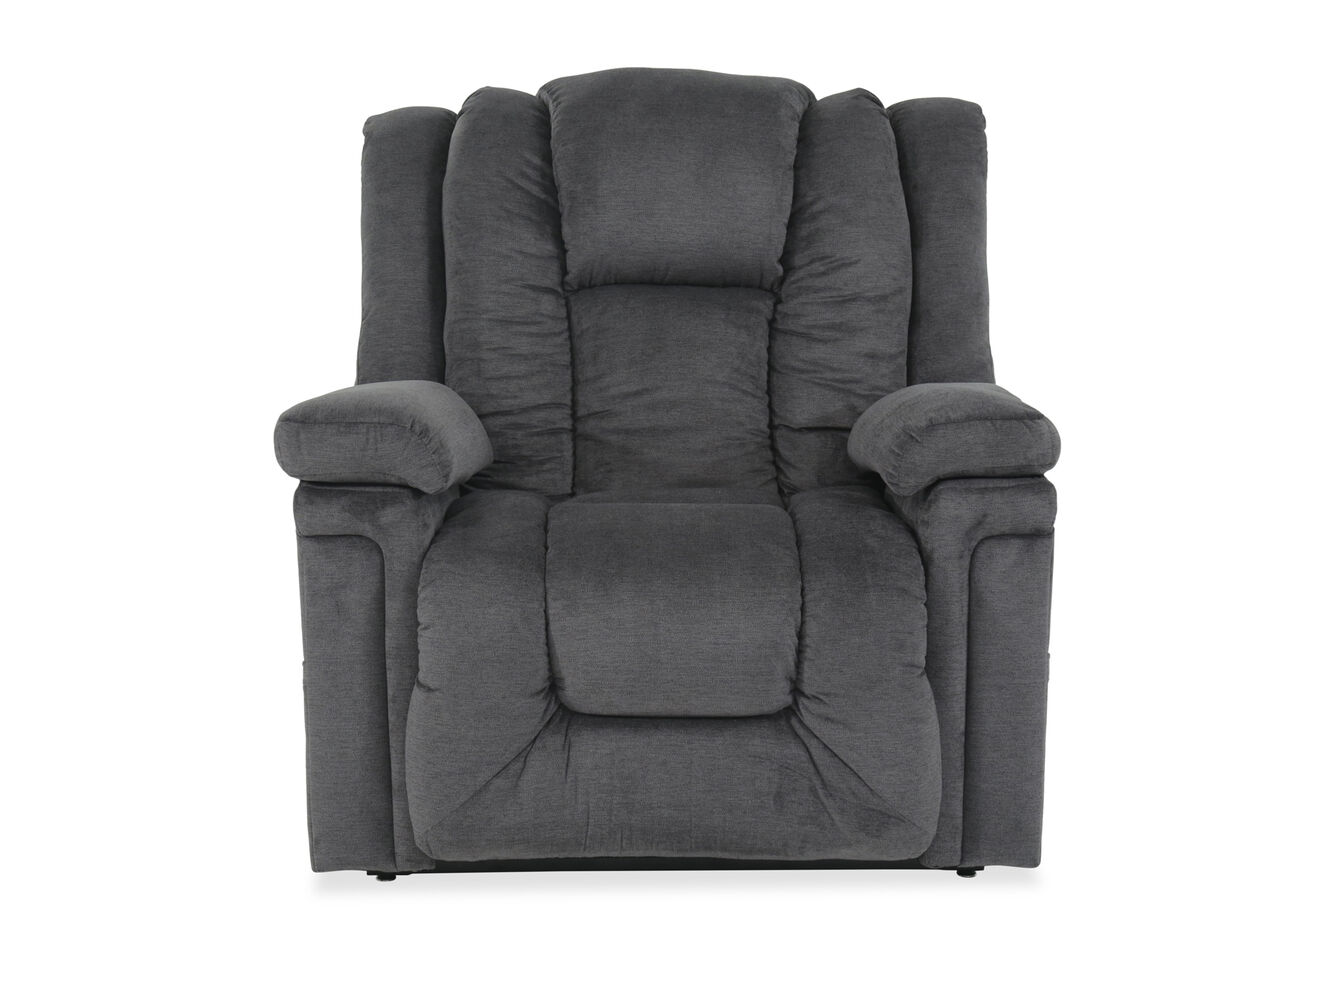 49 Quot Leather Power Lift Recliner In Gray Mathis Brothers